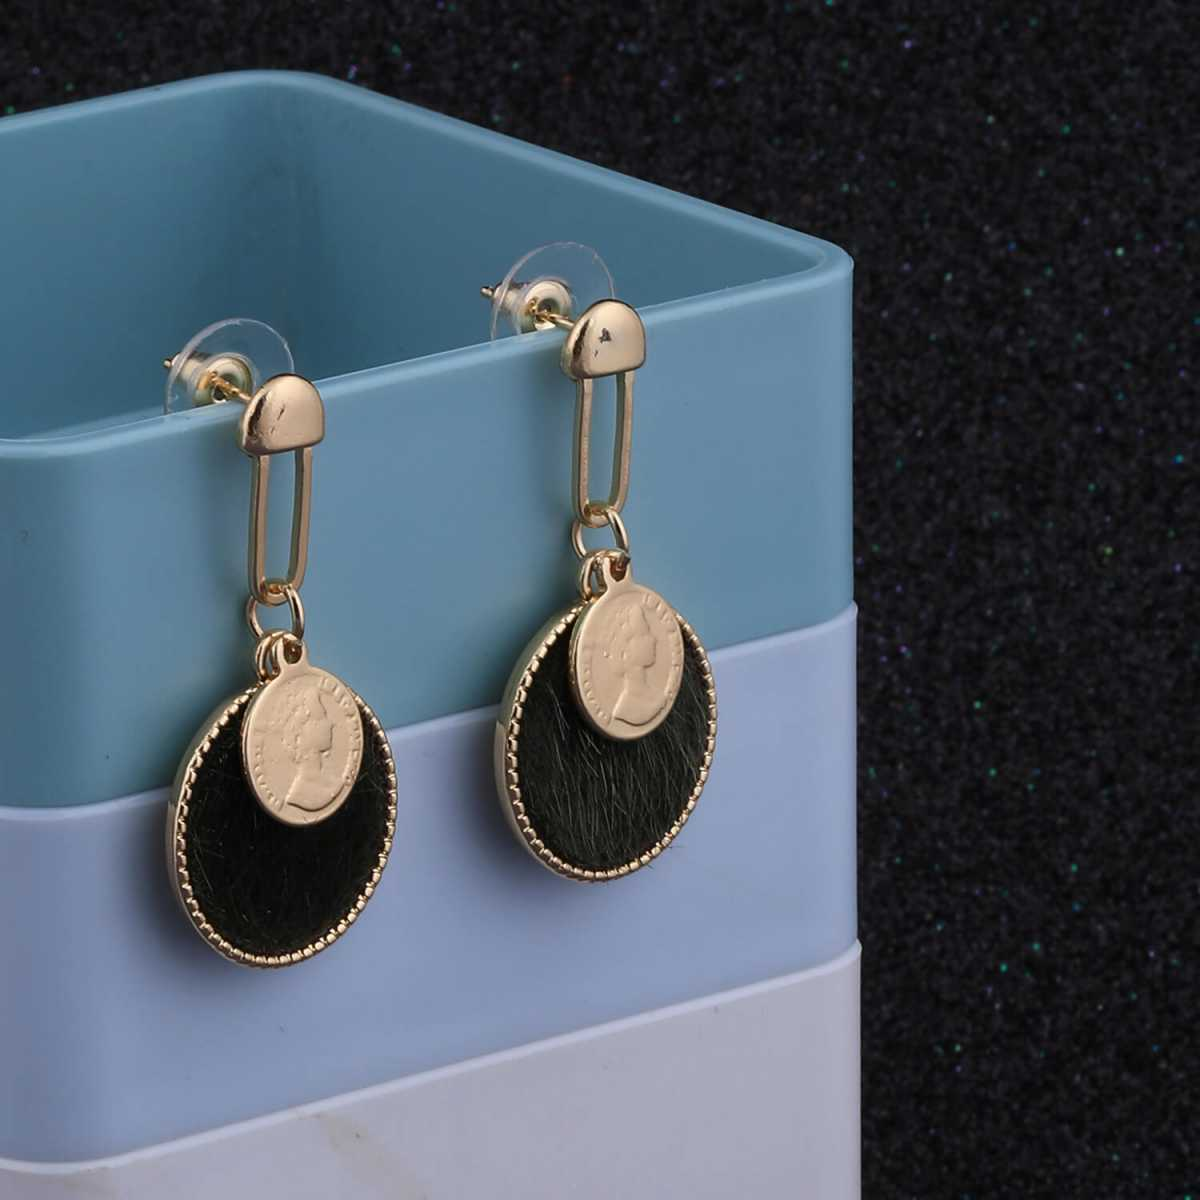 SILVER SHINE Gold Plated Stylish Designer Dangle Earring For Women Girl